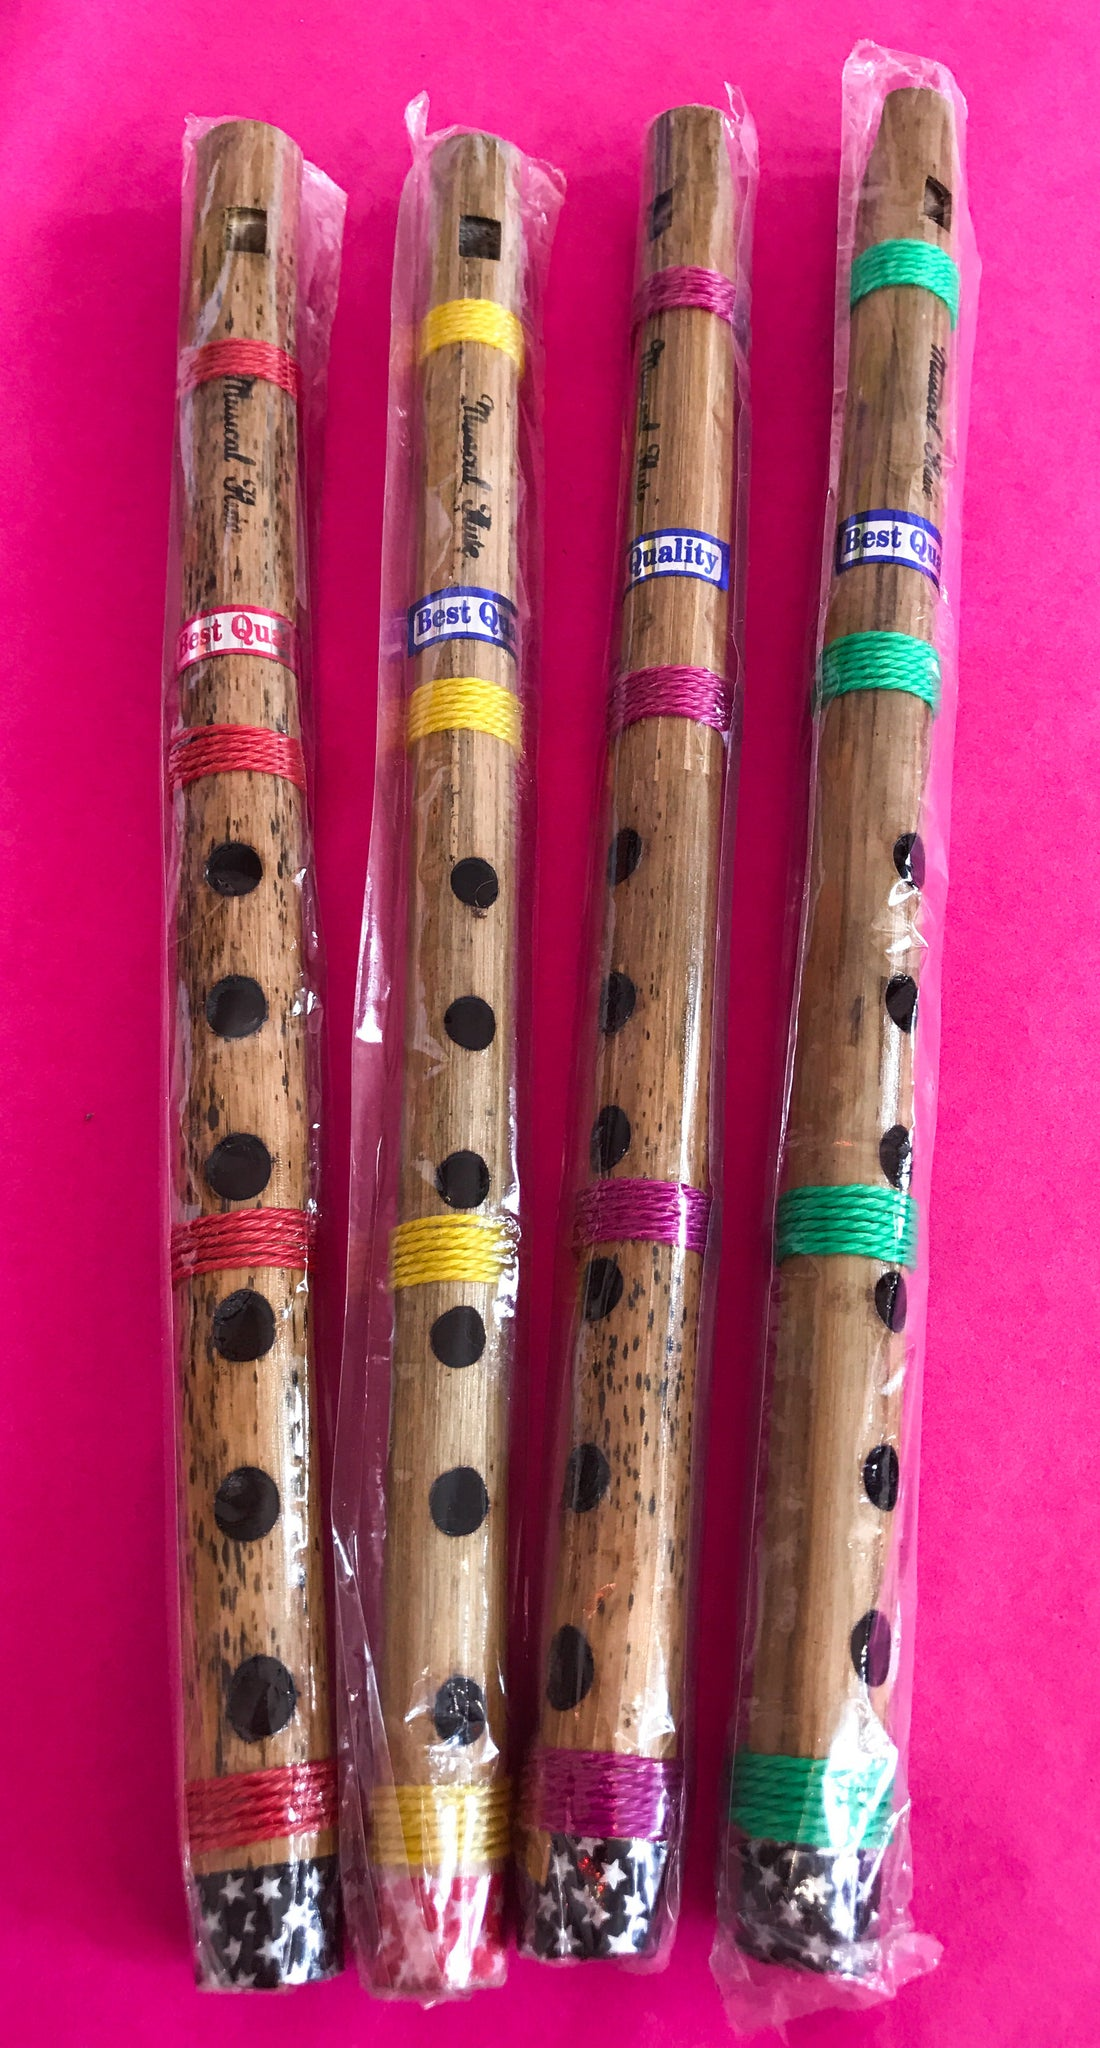 Bamboo Flutes